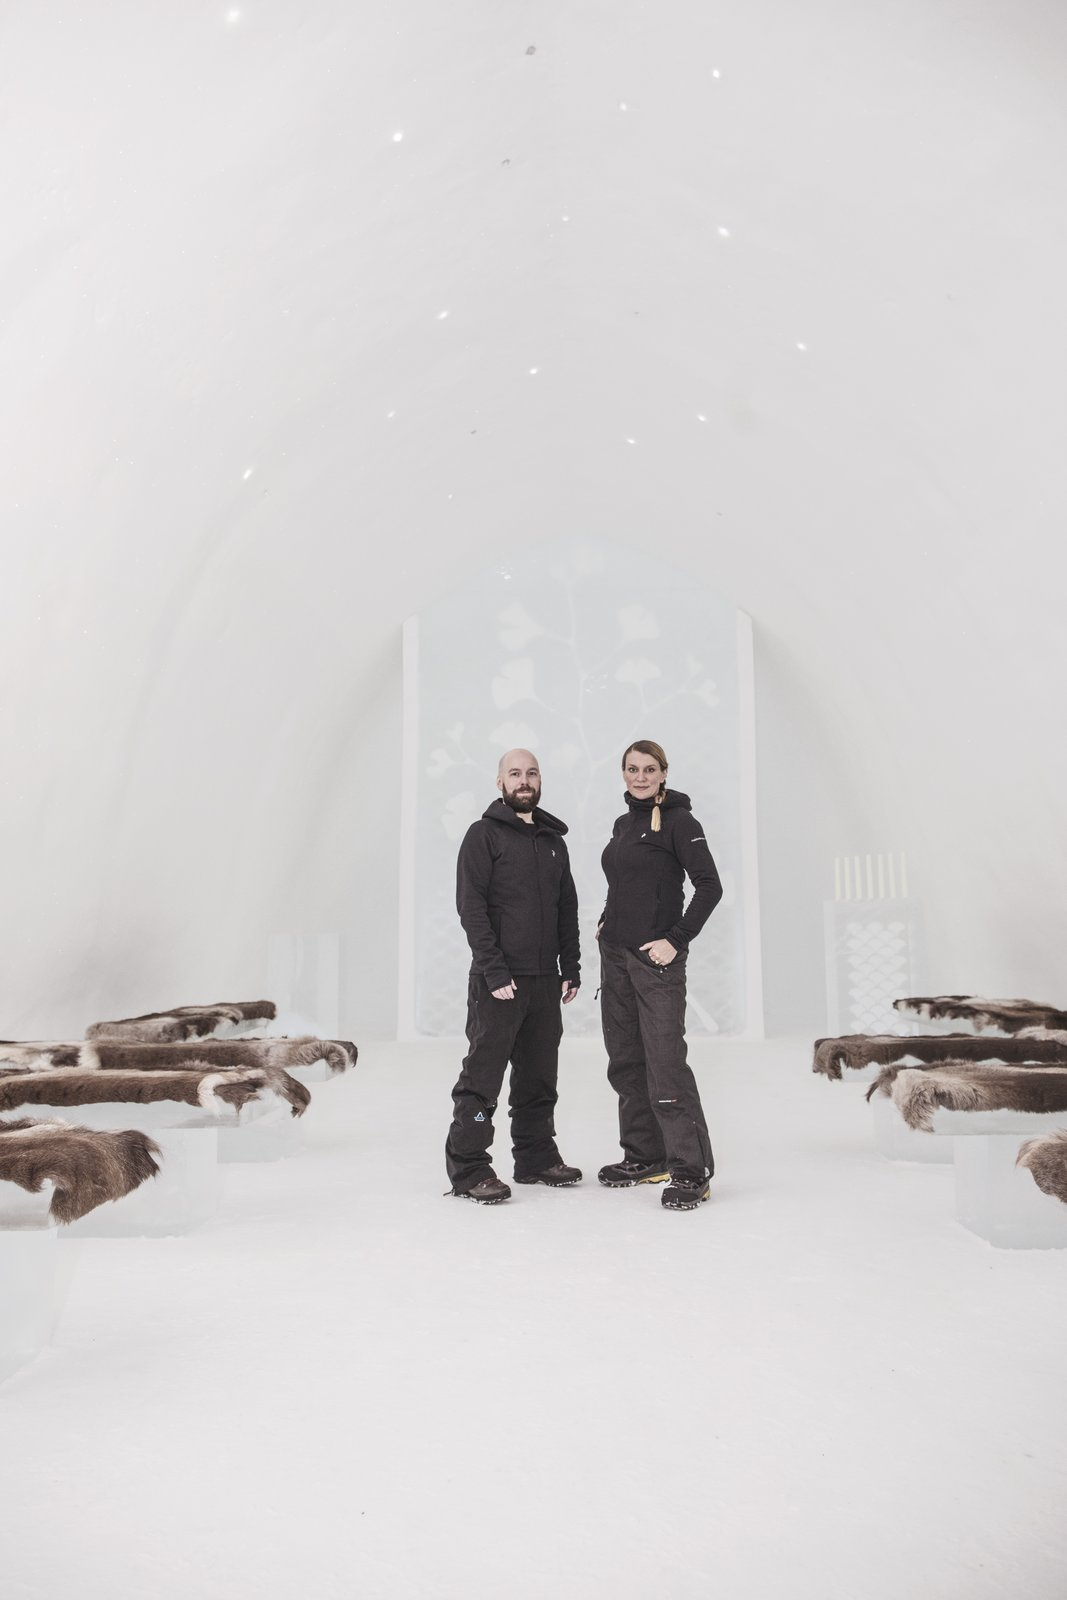 ❄️Check Out This Chilling Design at Sweden's Icehotel! icehotel ❄️Check Out This Chilling Design at Sweden's Icehotel! 1